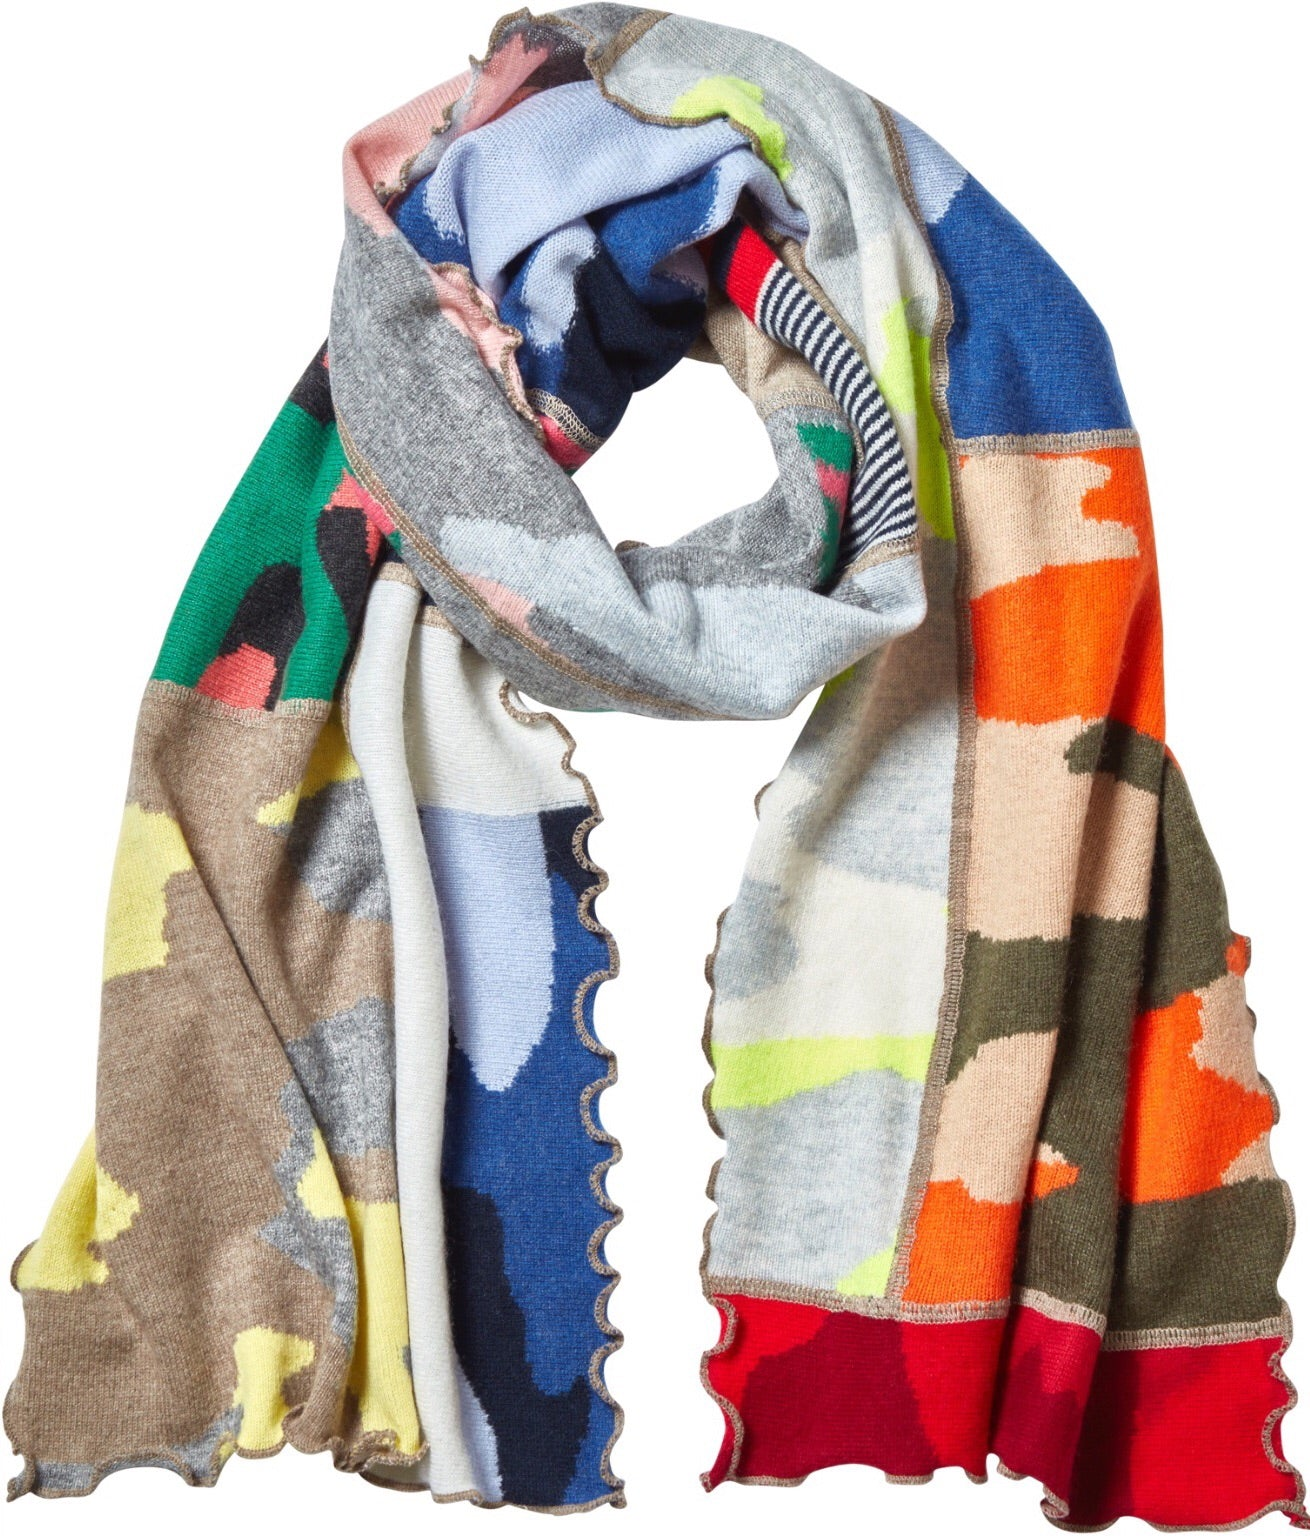 Patchwork Scarf - Back In Stock!